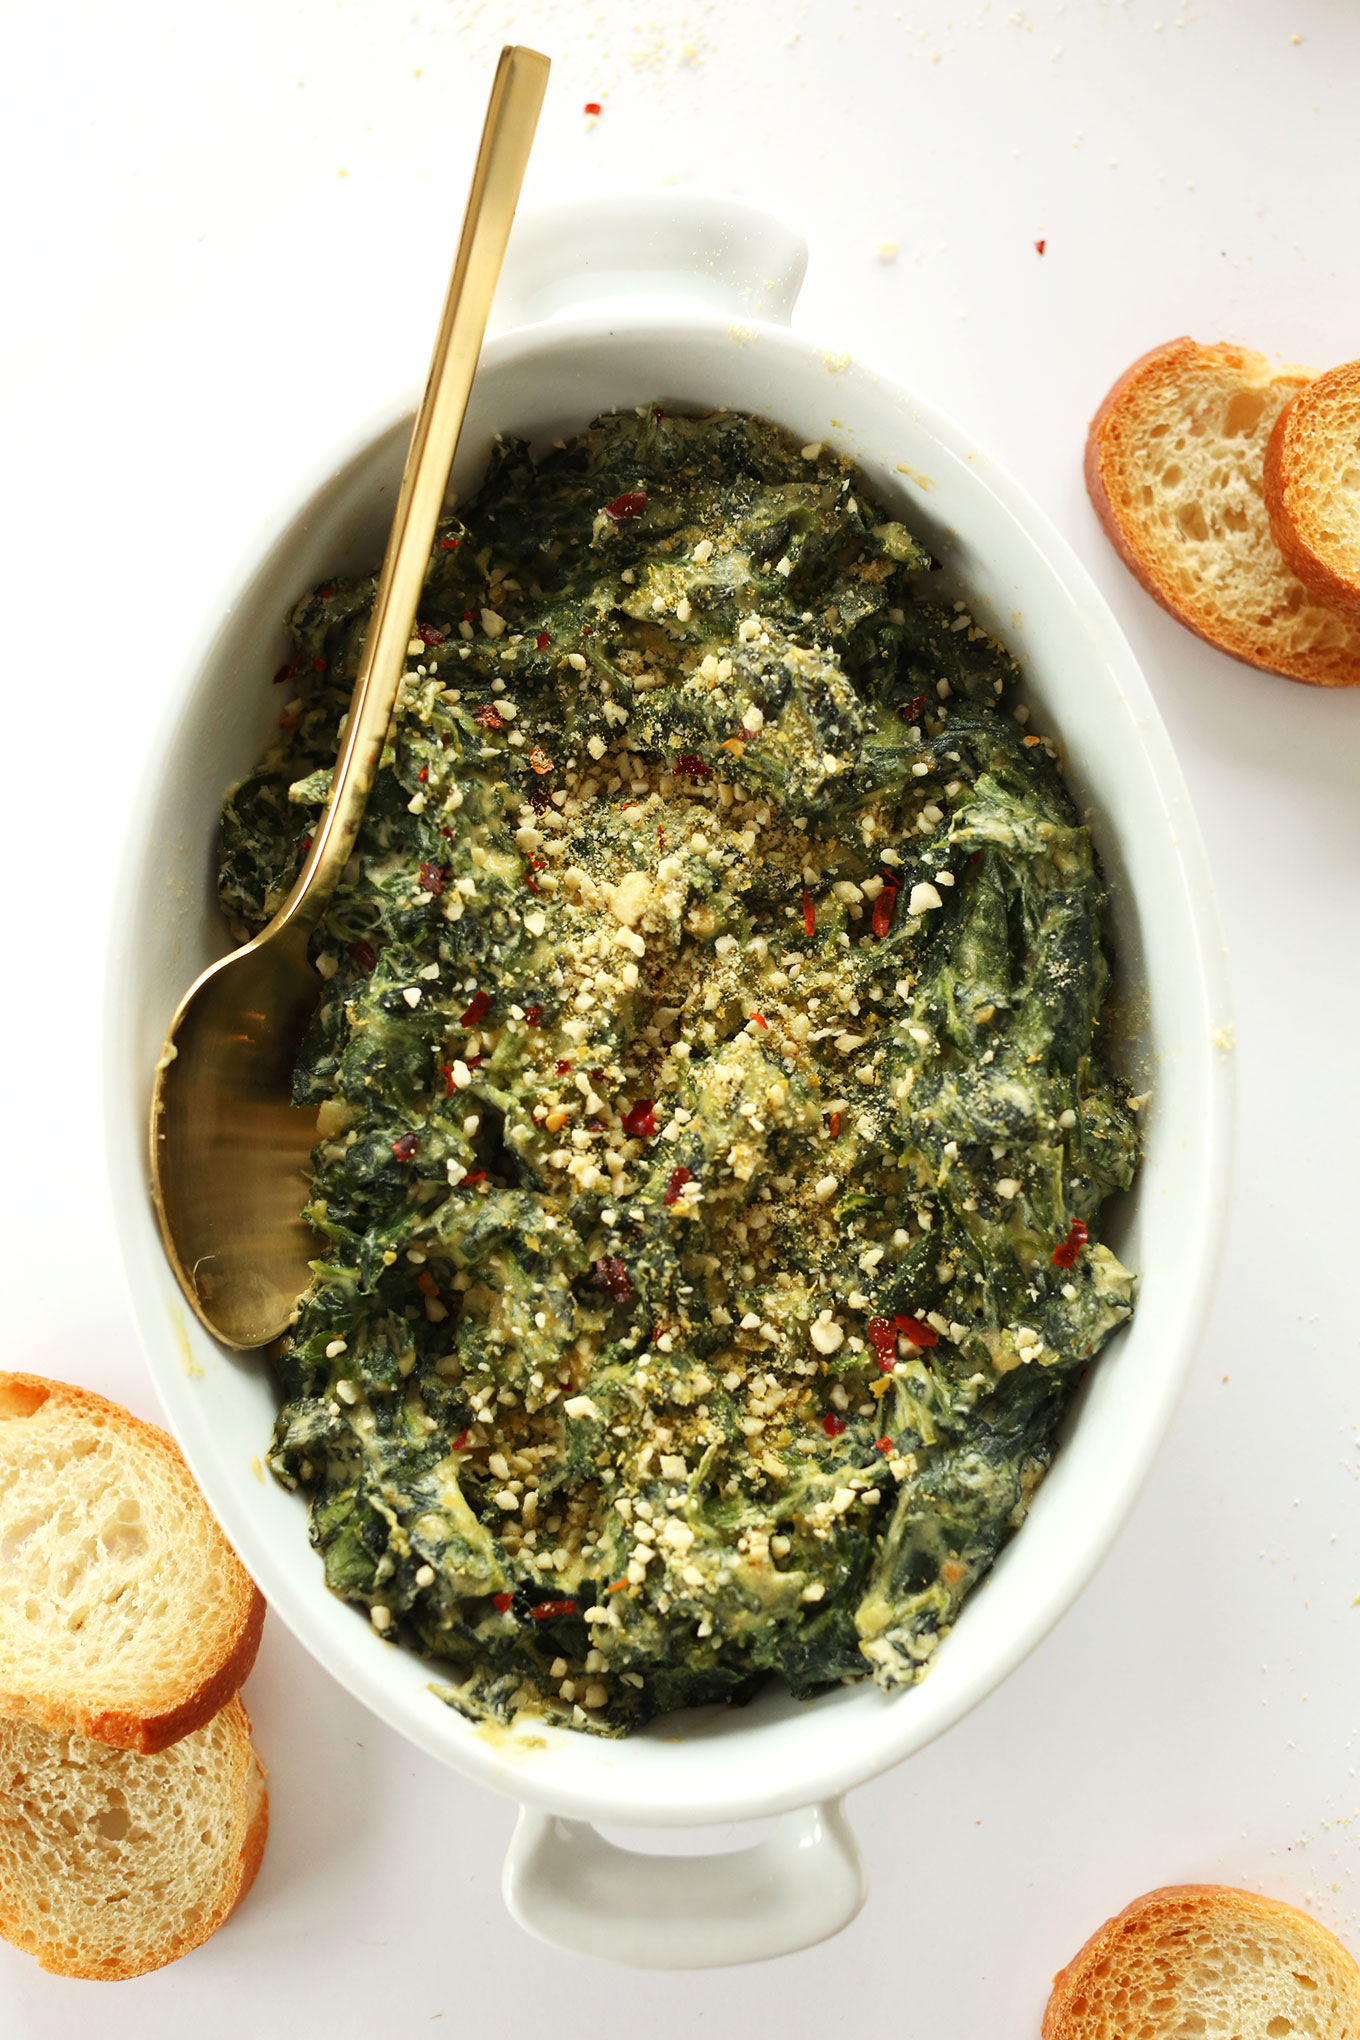 Ceramic dish filled with our Creamy vegan Kale and Spinach Dip